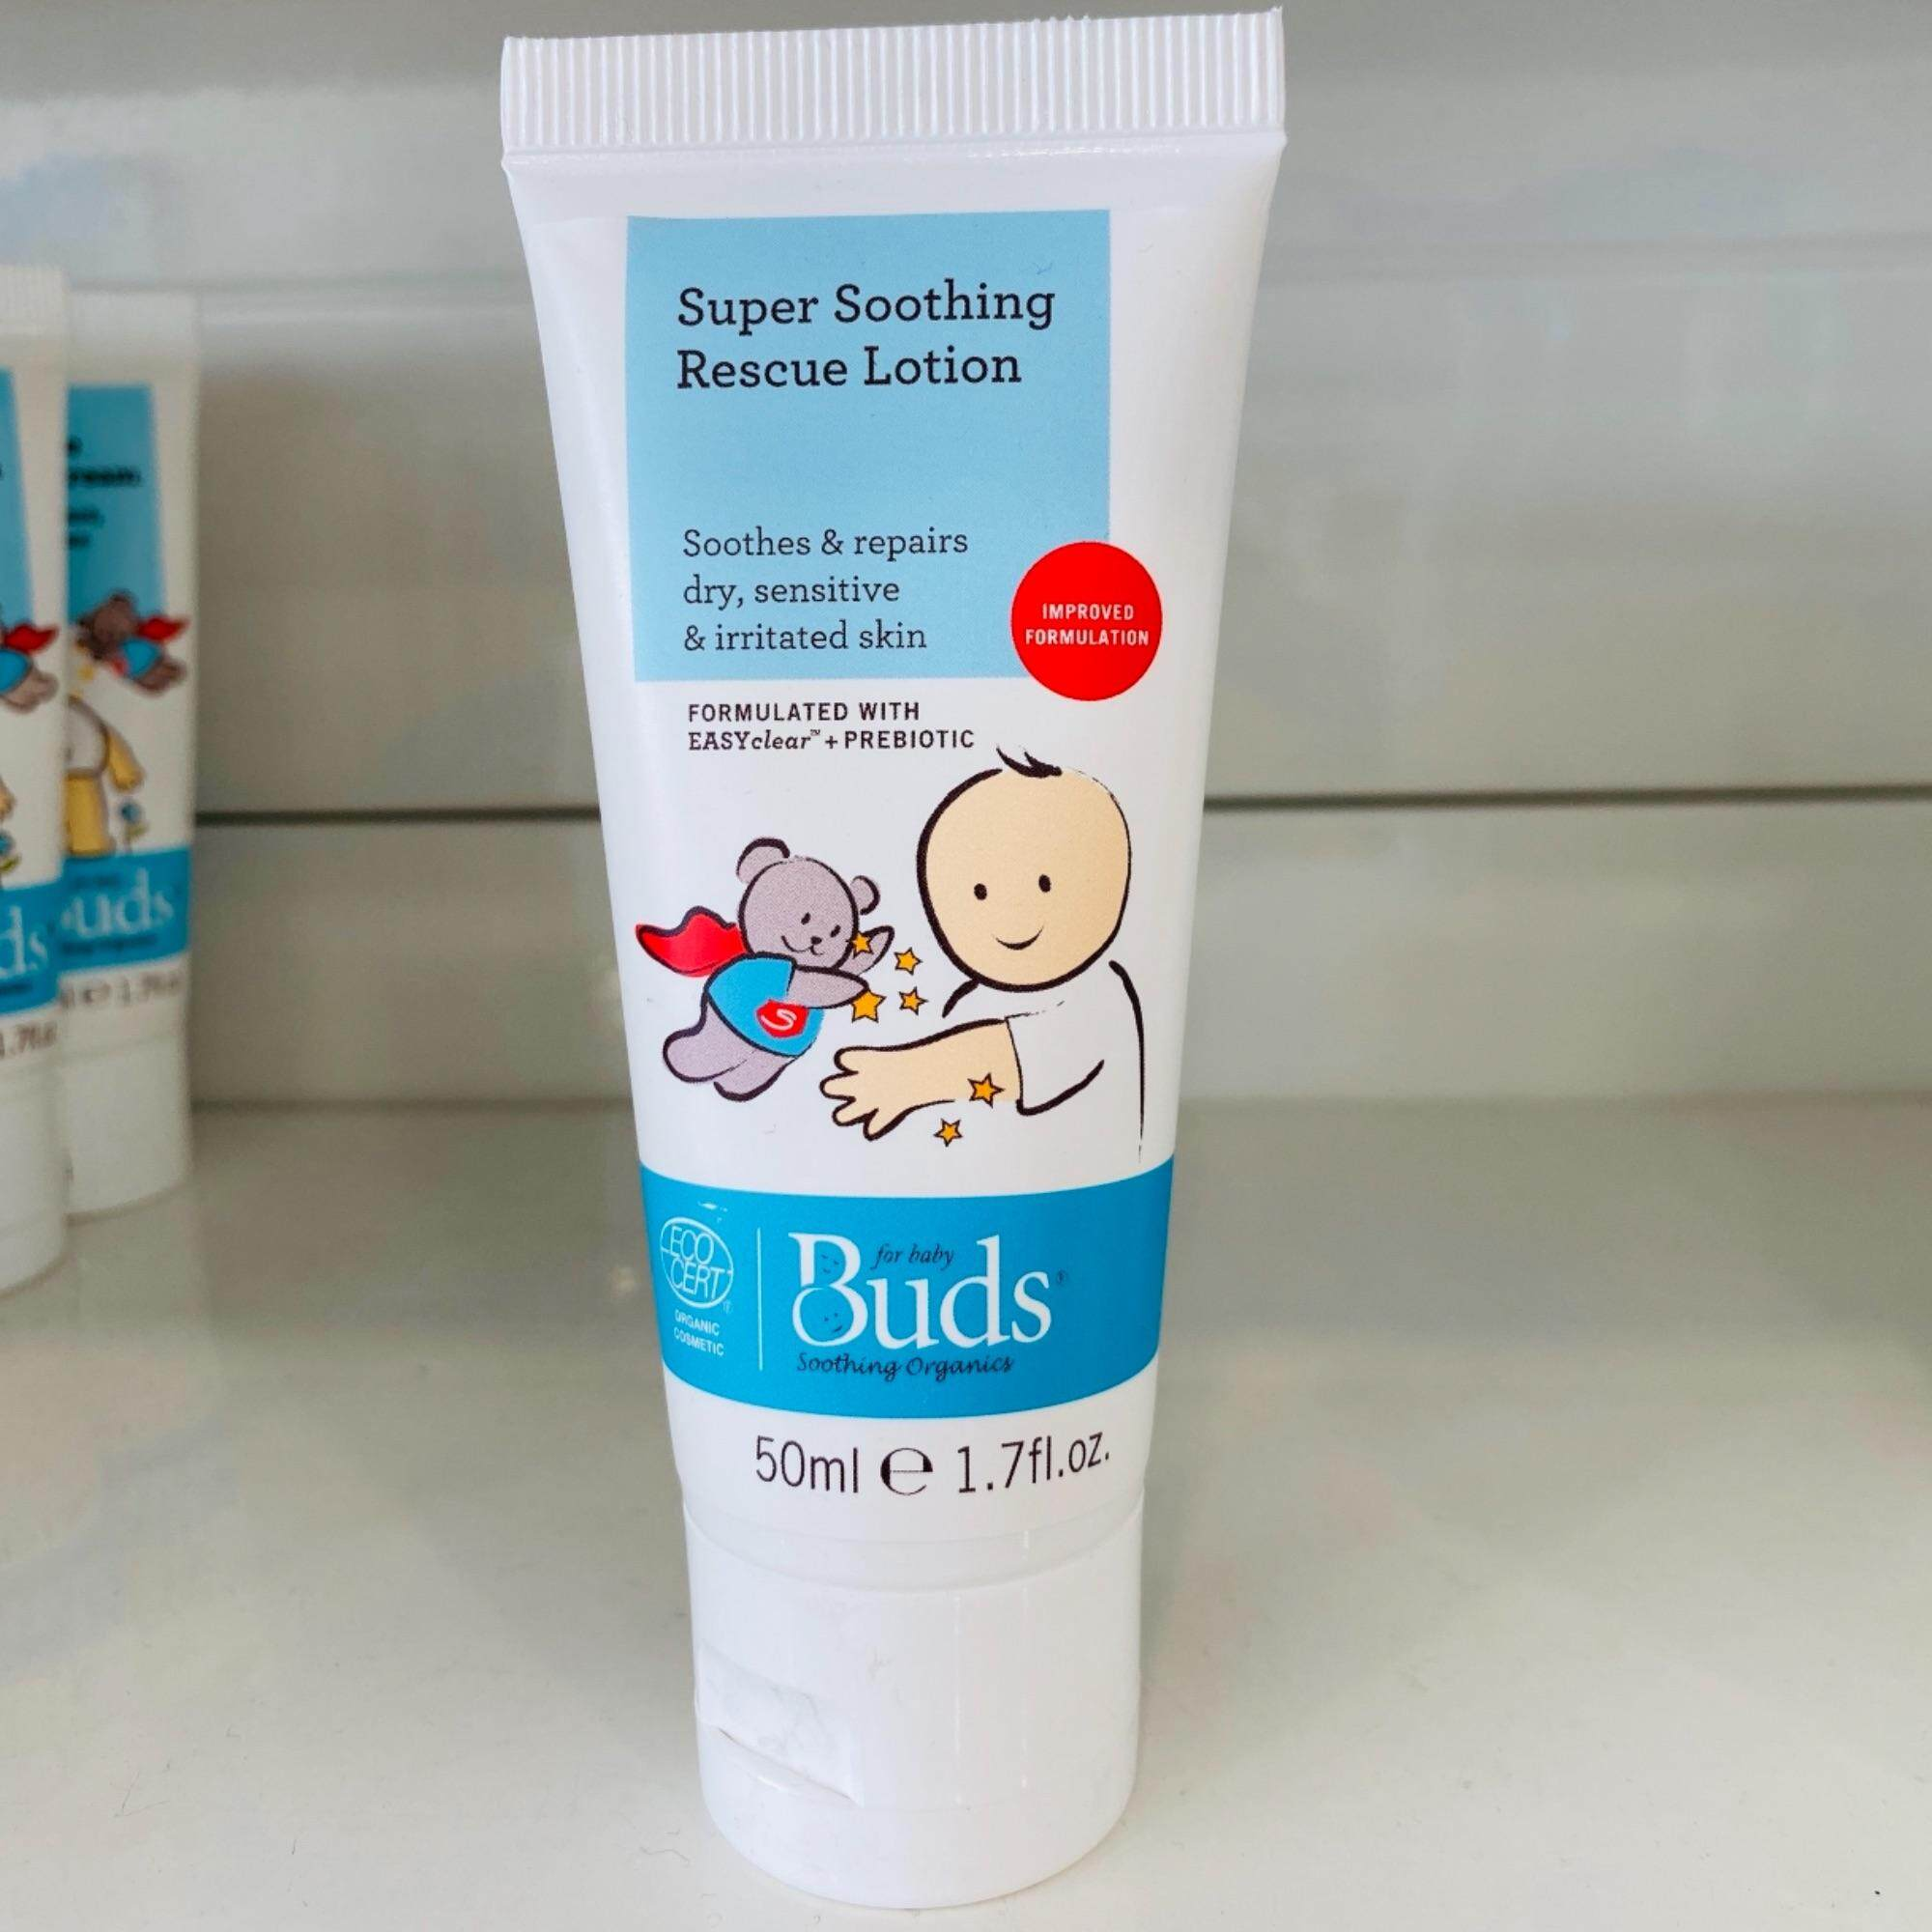 Buds Super Soothing Rescue Lotion 50ml (NEW PACKAGING)